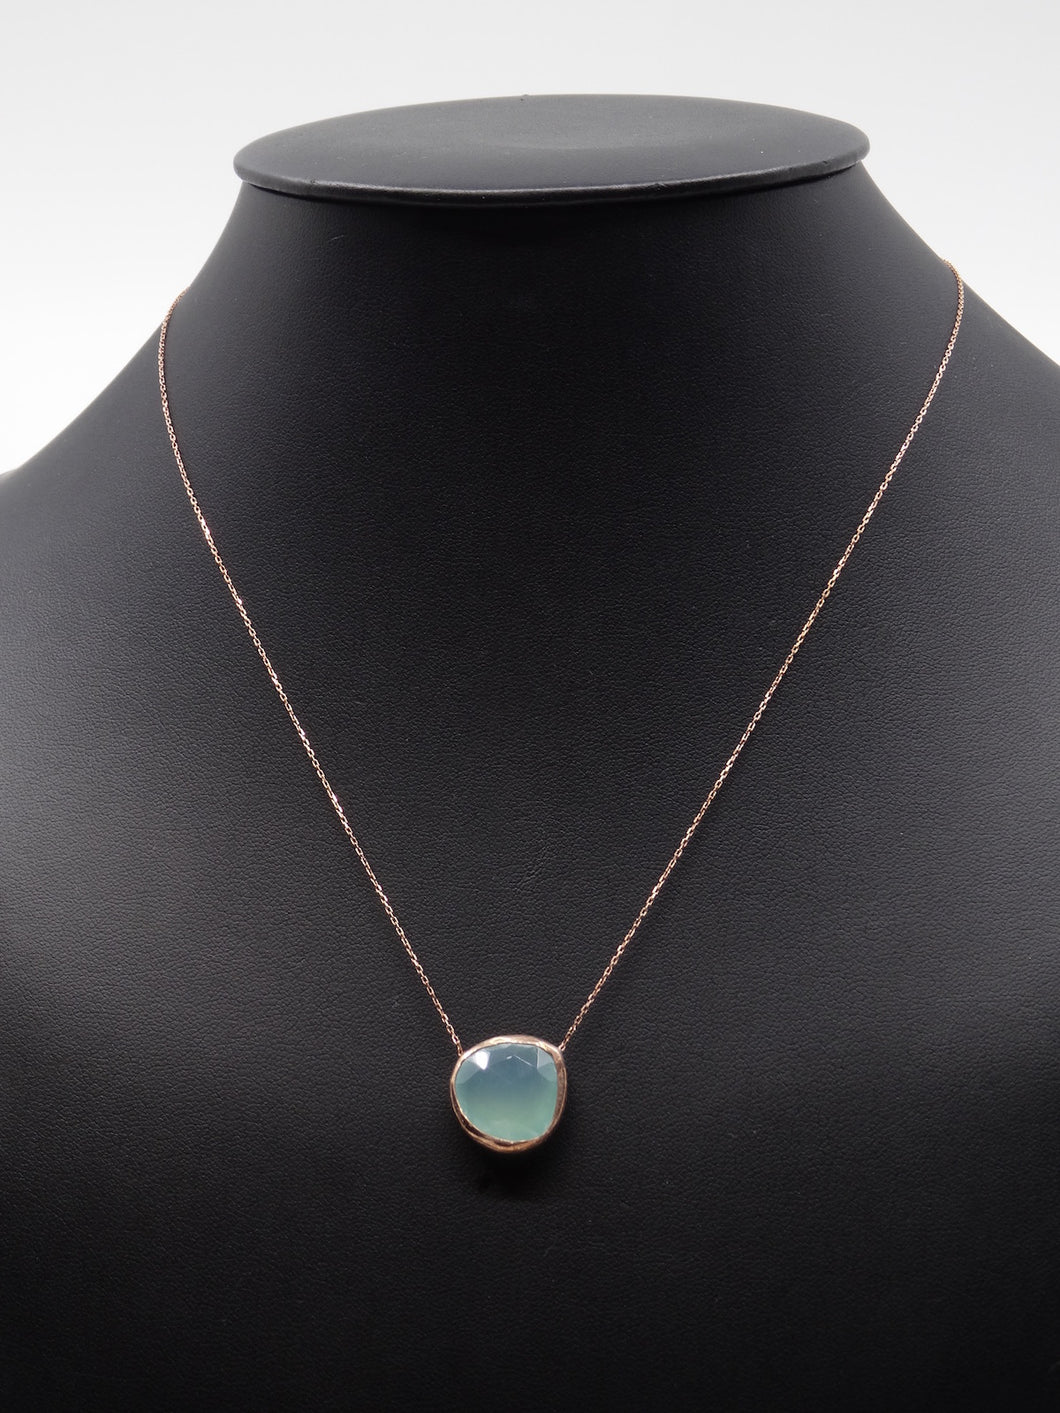 Red Turk Blue Chalcedony Necklace